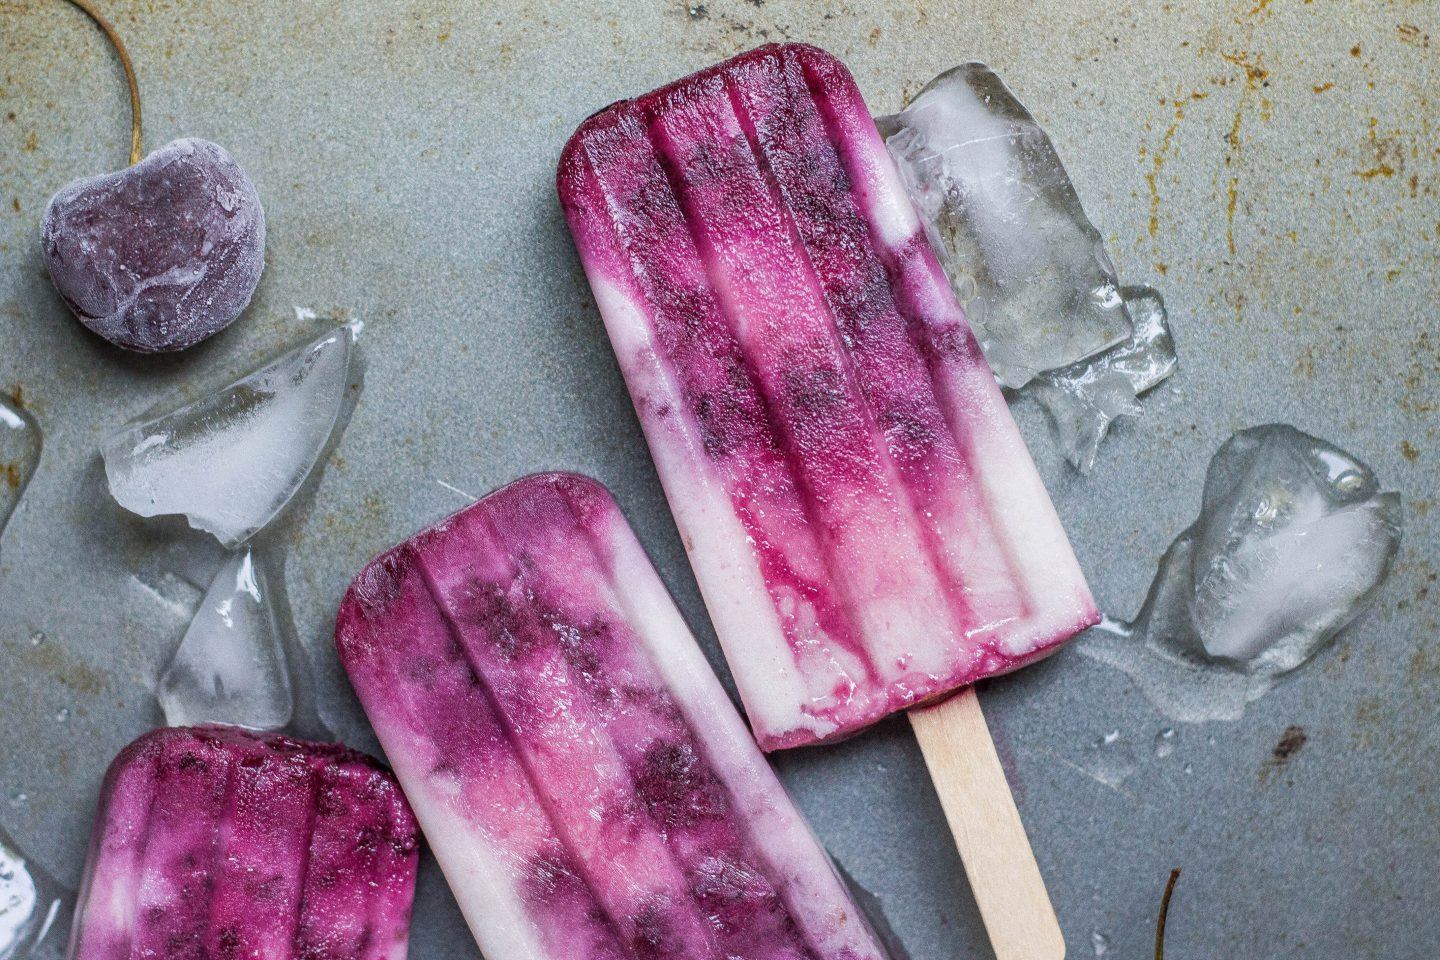 How to Make Sorbet Without an Ice Cream Maker